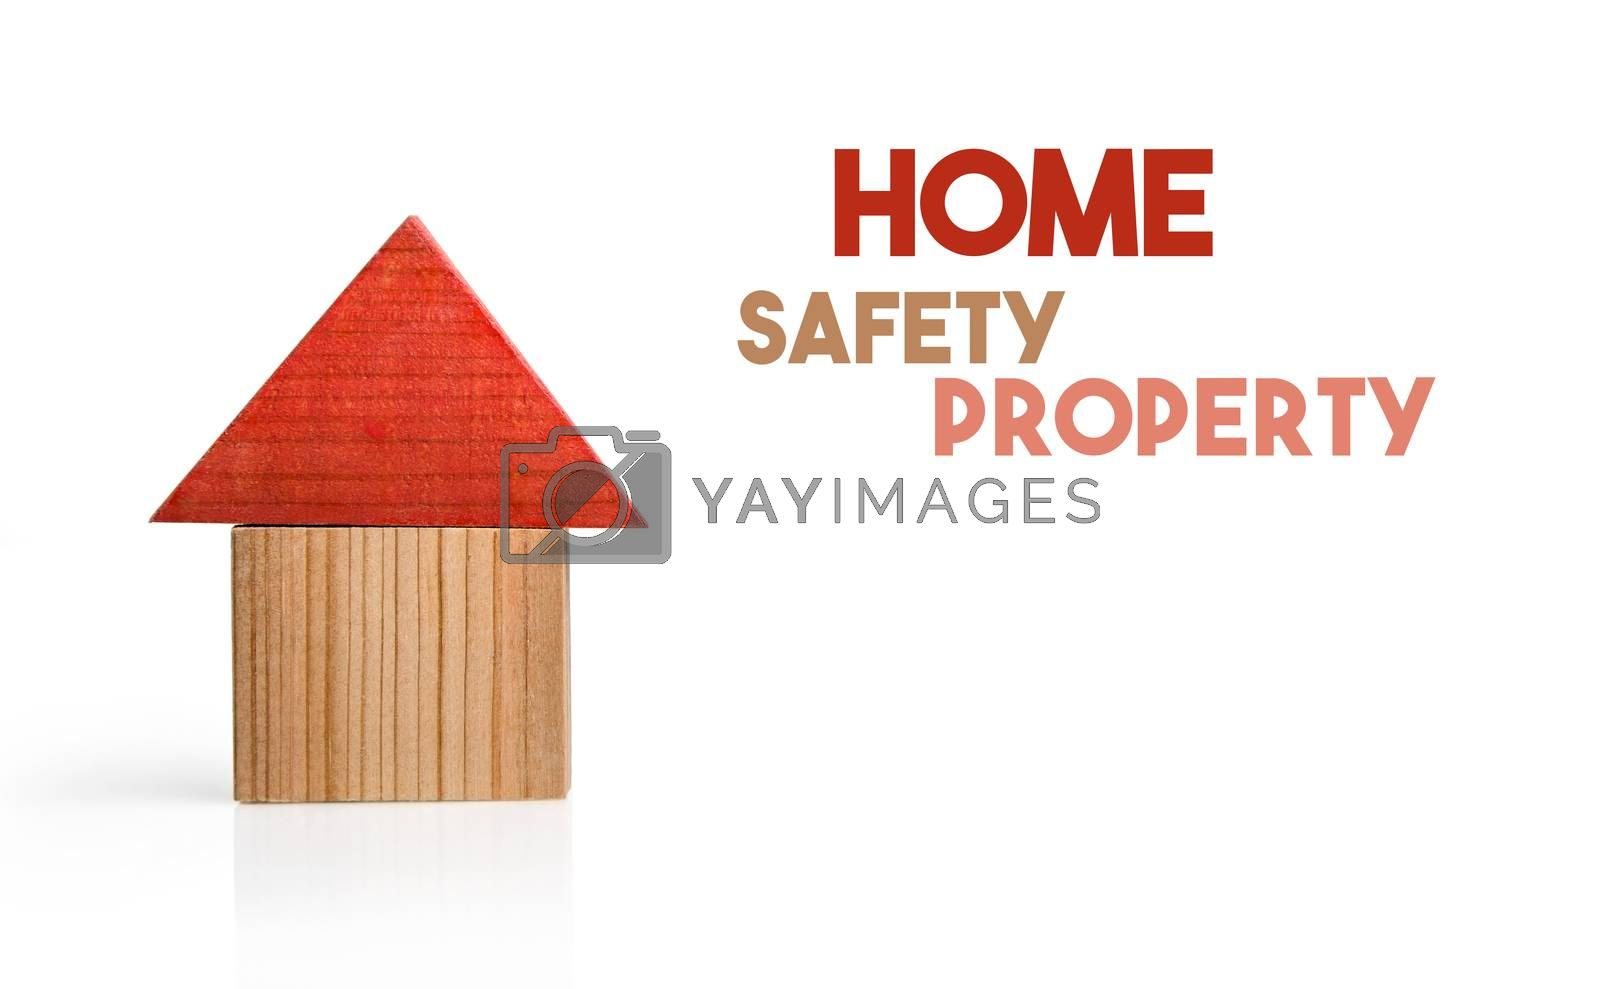 Wooden house model as a symbol of safety living.